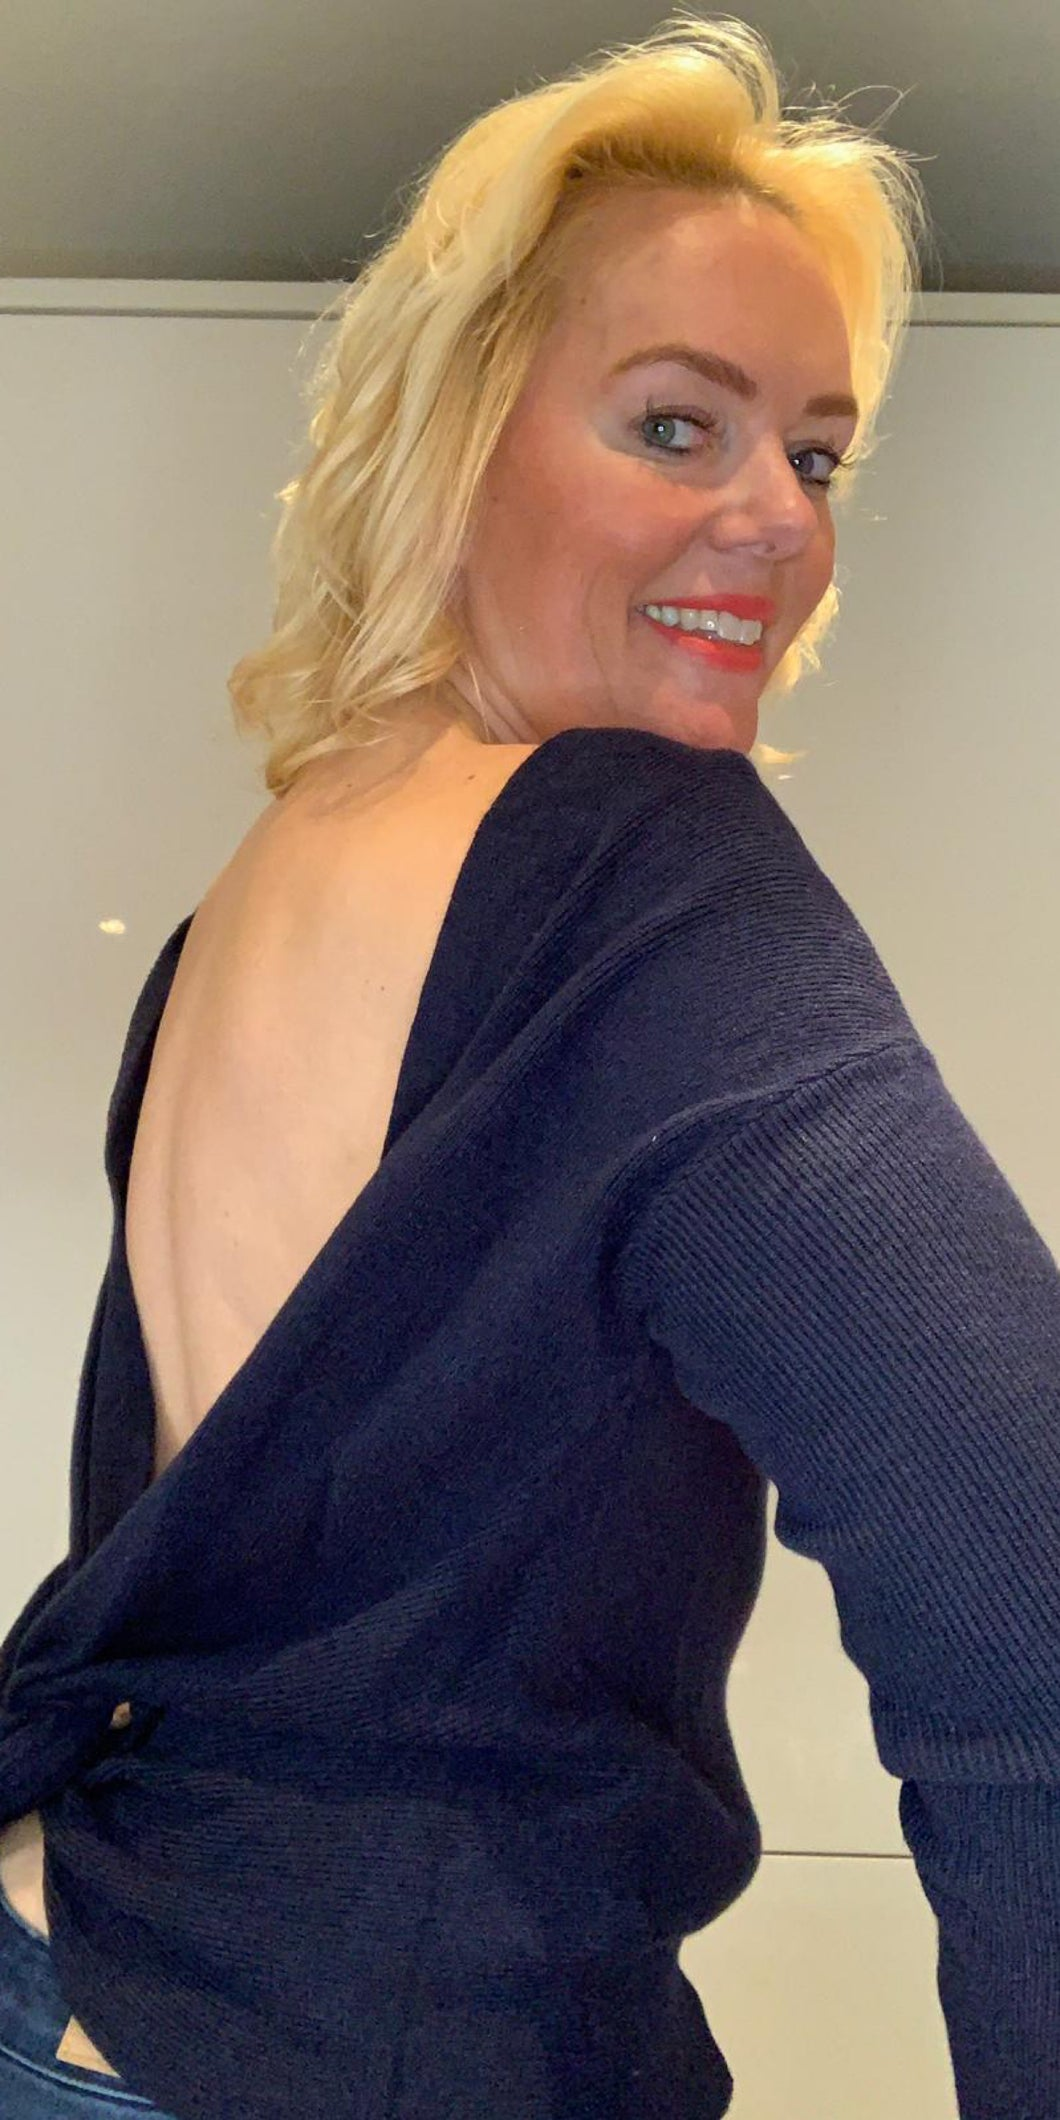 Navy Backless Crossover Knit - chichappensboutique